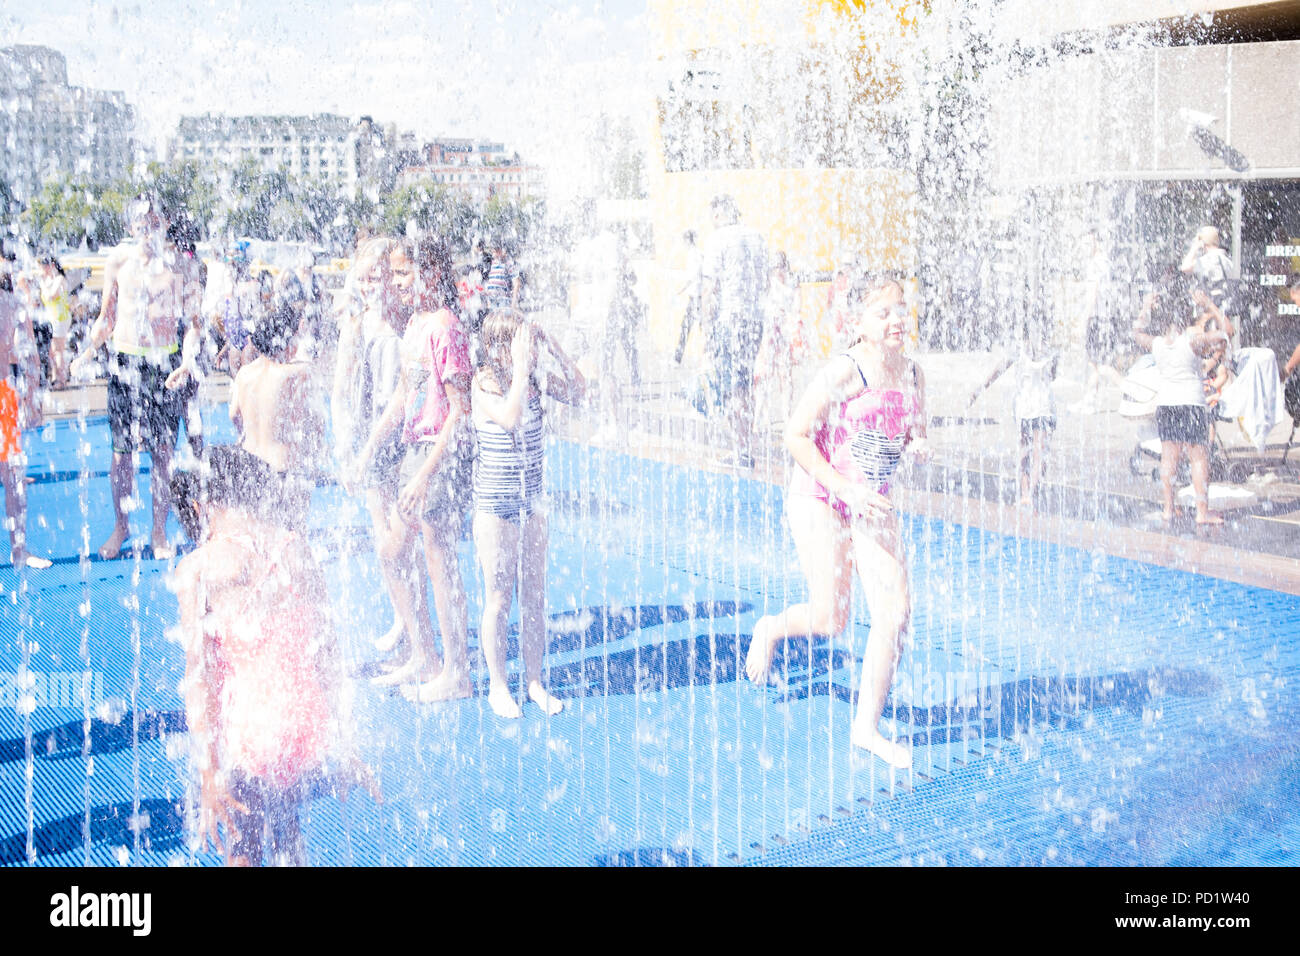 Children have fun and cool off during the summer heat wave in central London Stock Photo